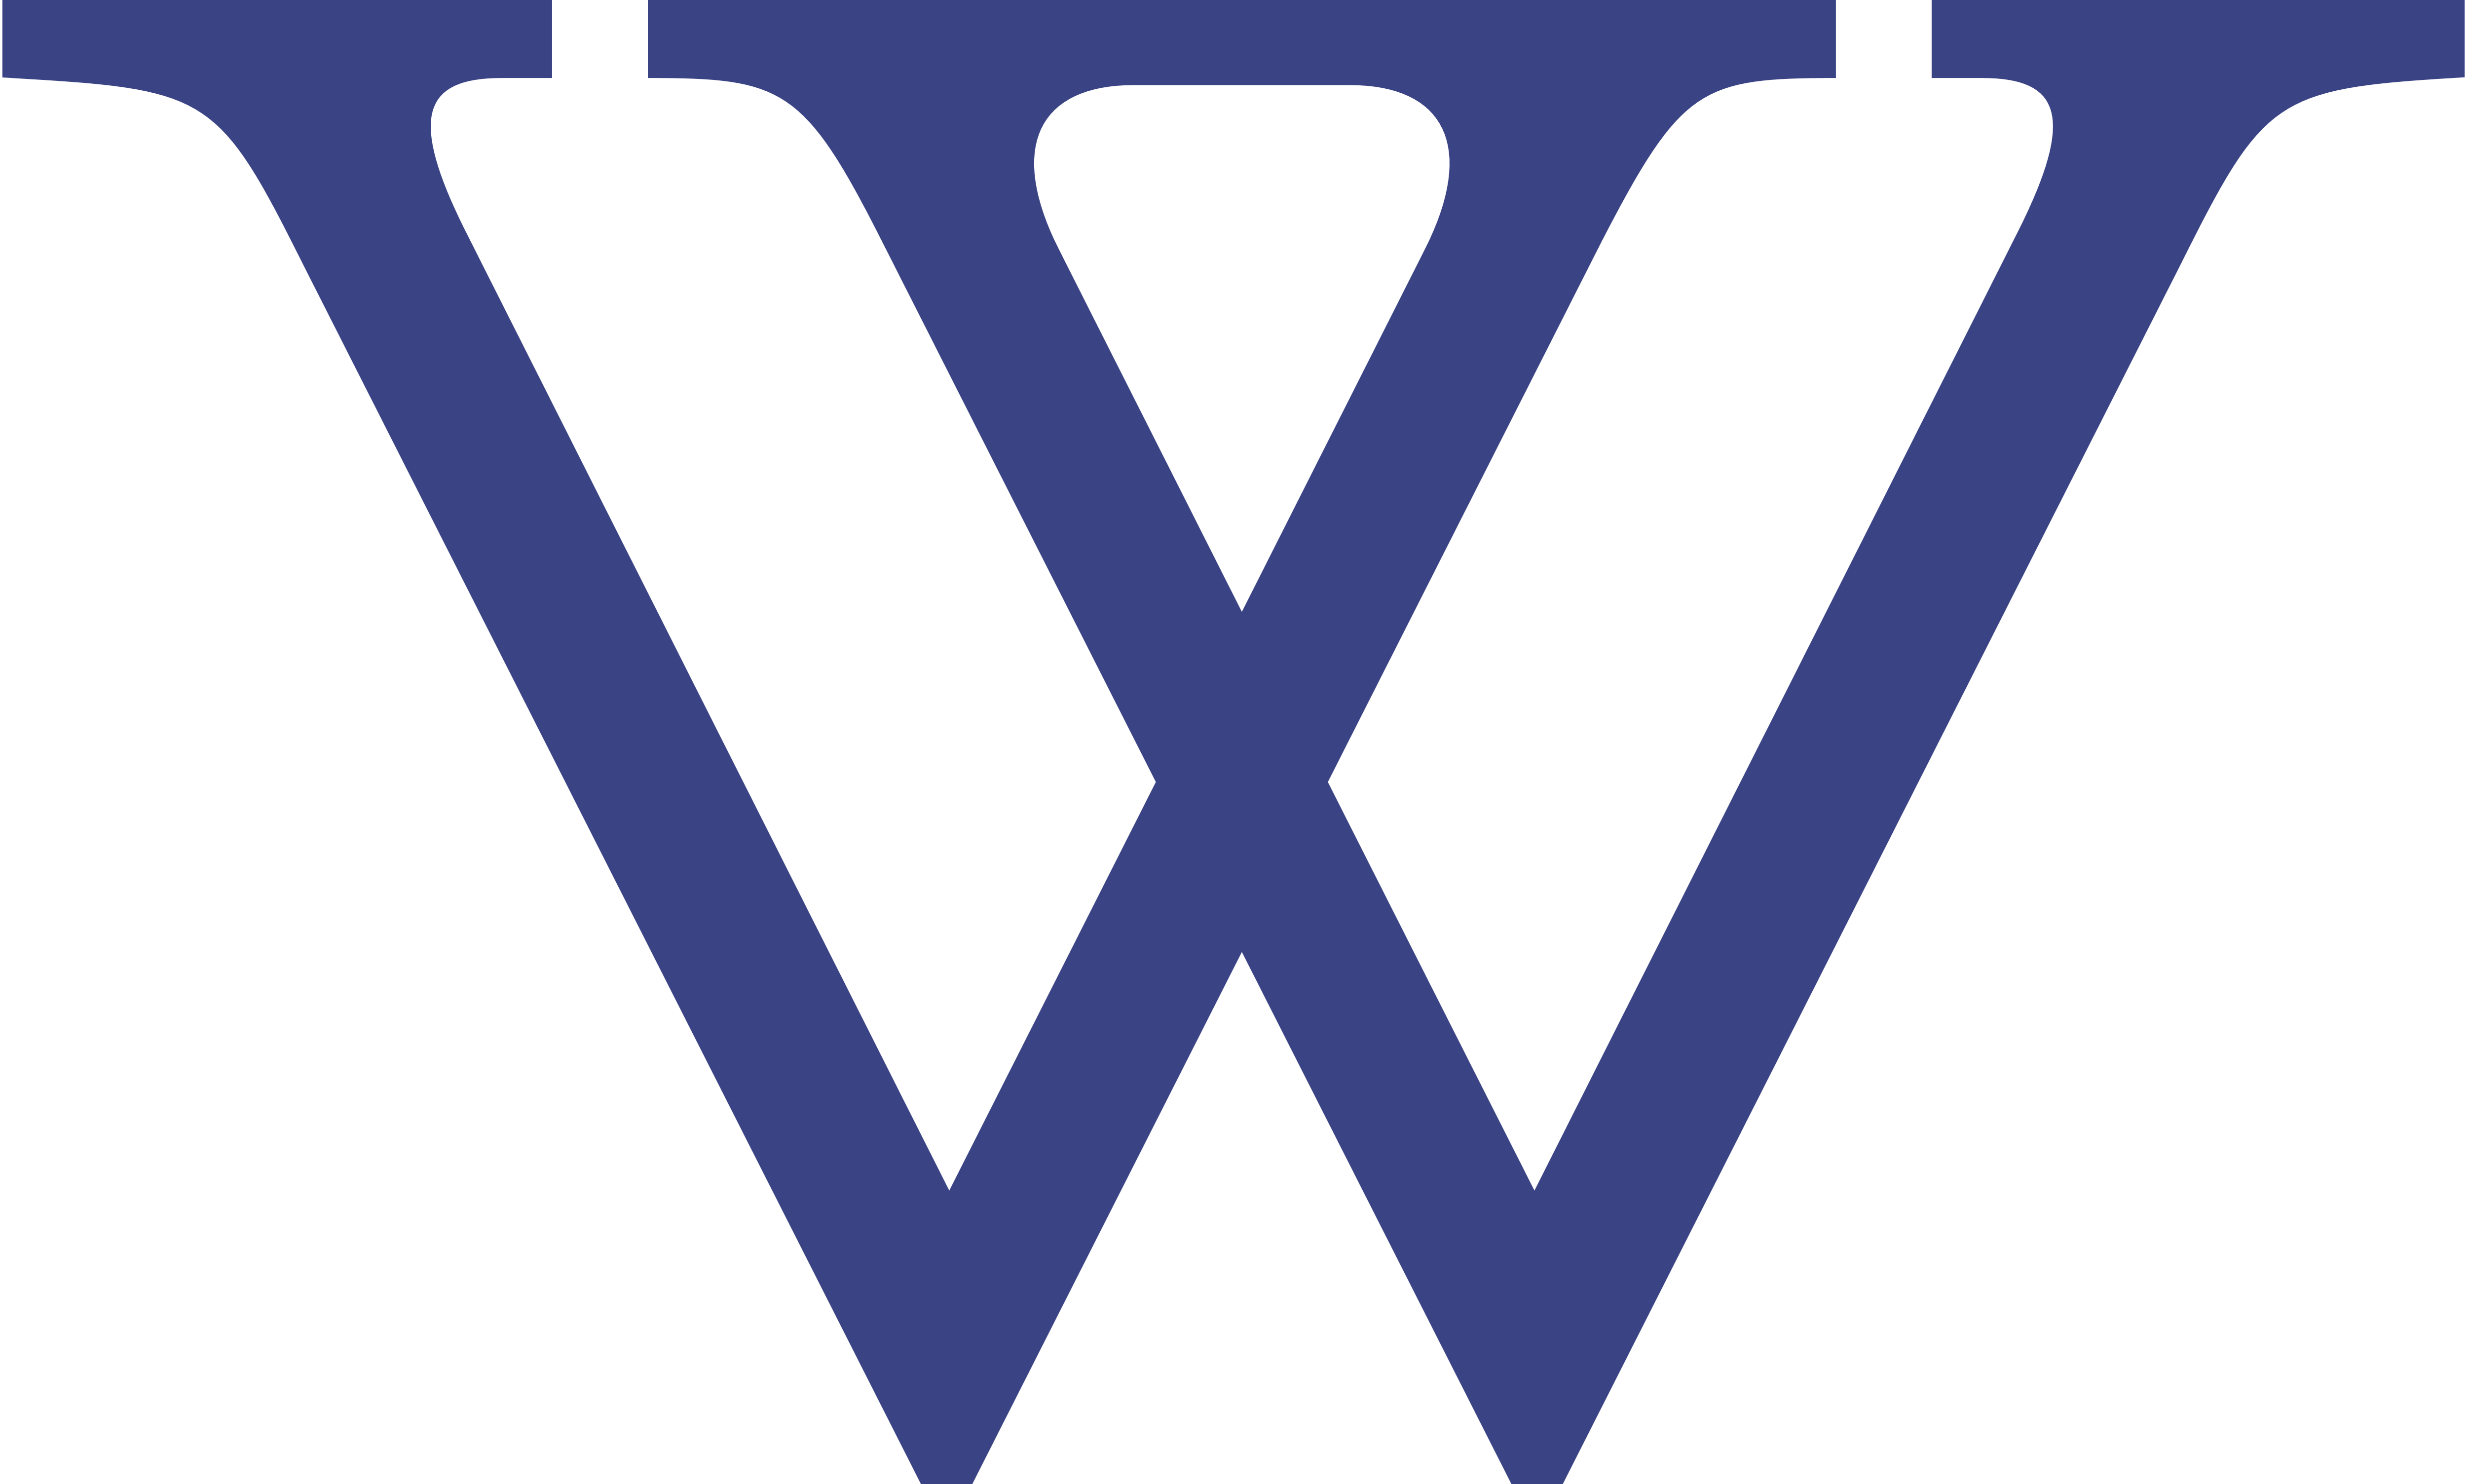 Wellesley logo, W only.